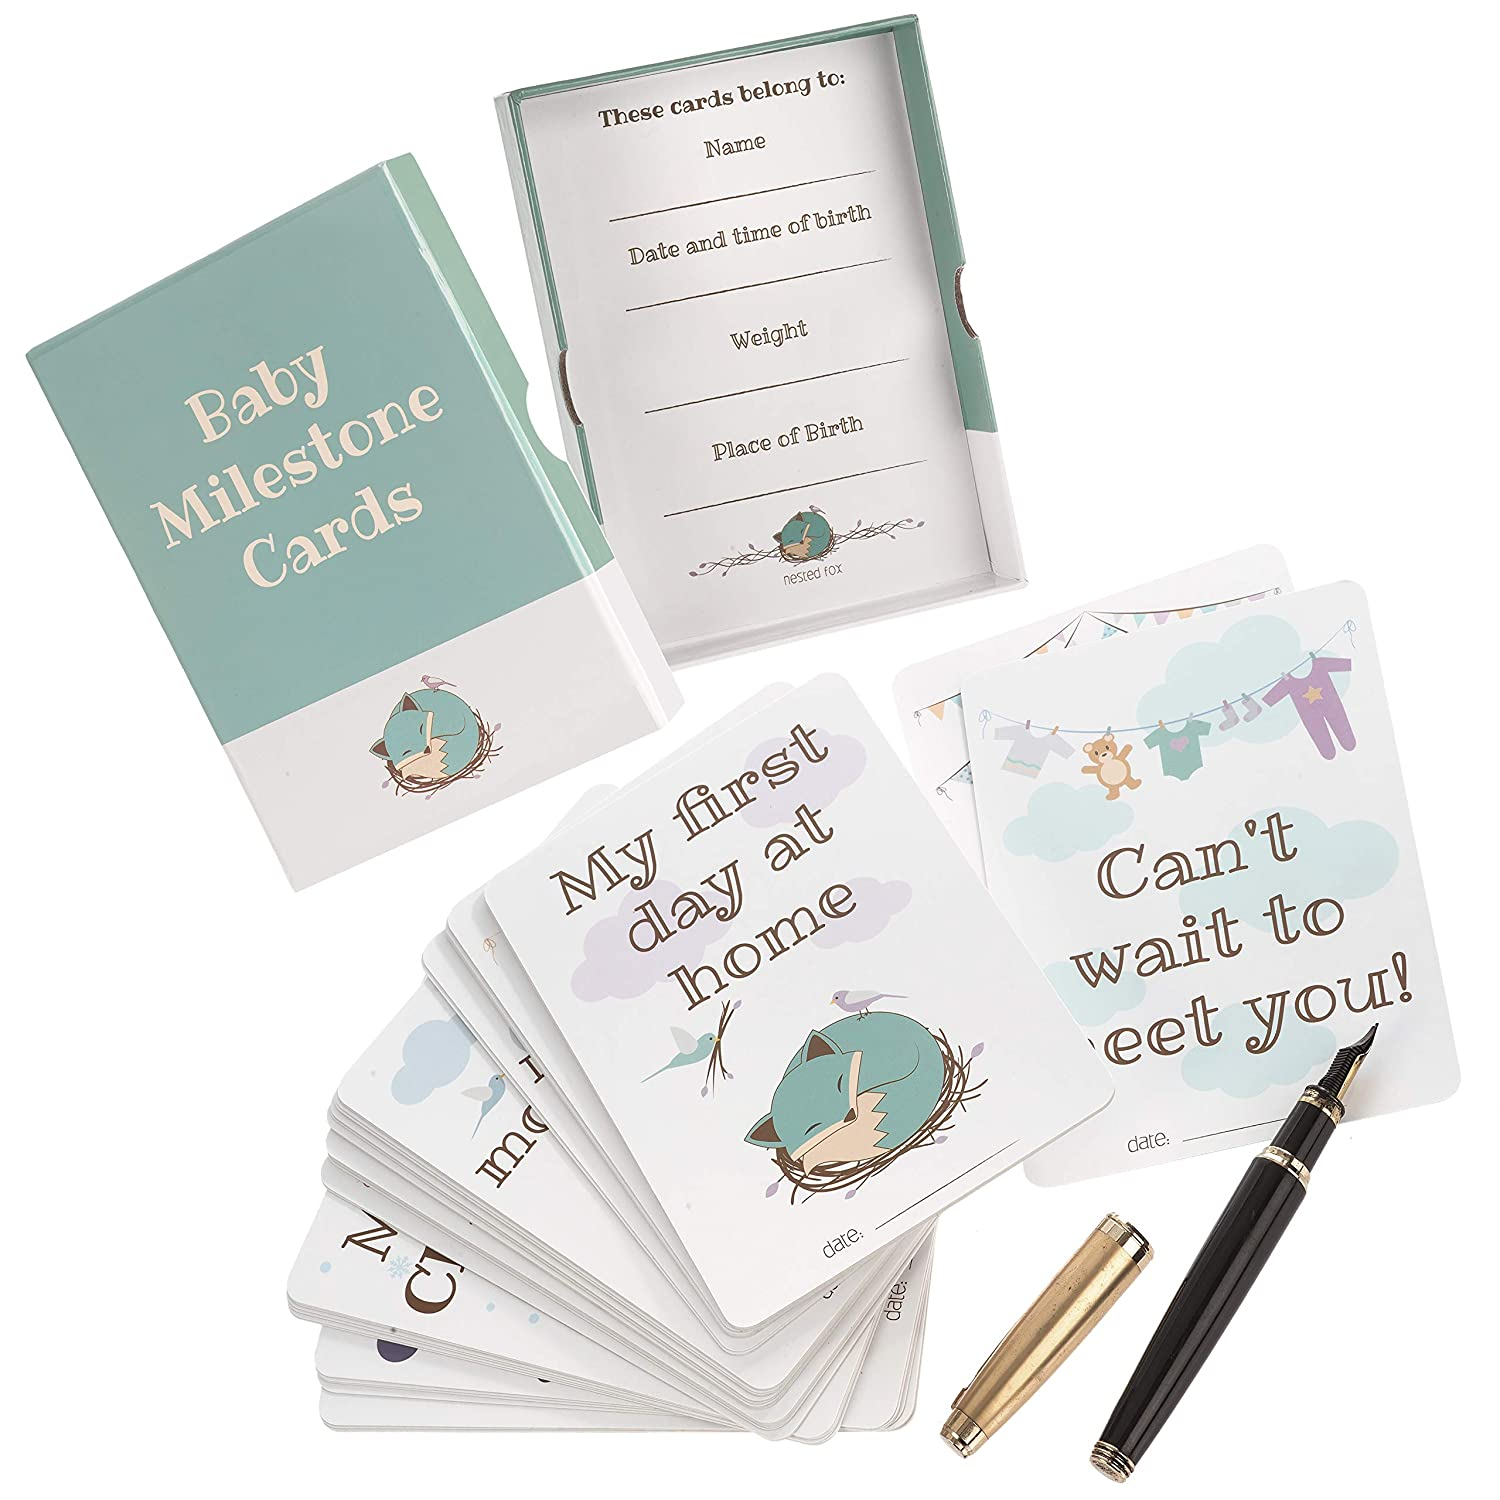 c4e791c77a275 Milestone Cards for Baby Shower Gifts – Large 50 Card Set in Keepsake Box -  Capture and Personalise Cherished Moments - Unisex Design by UK Mum